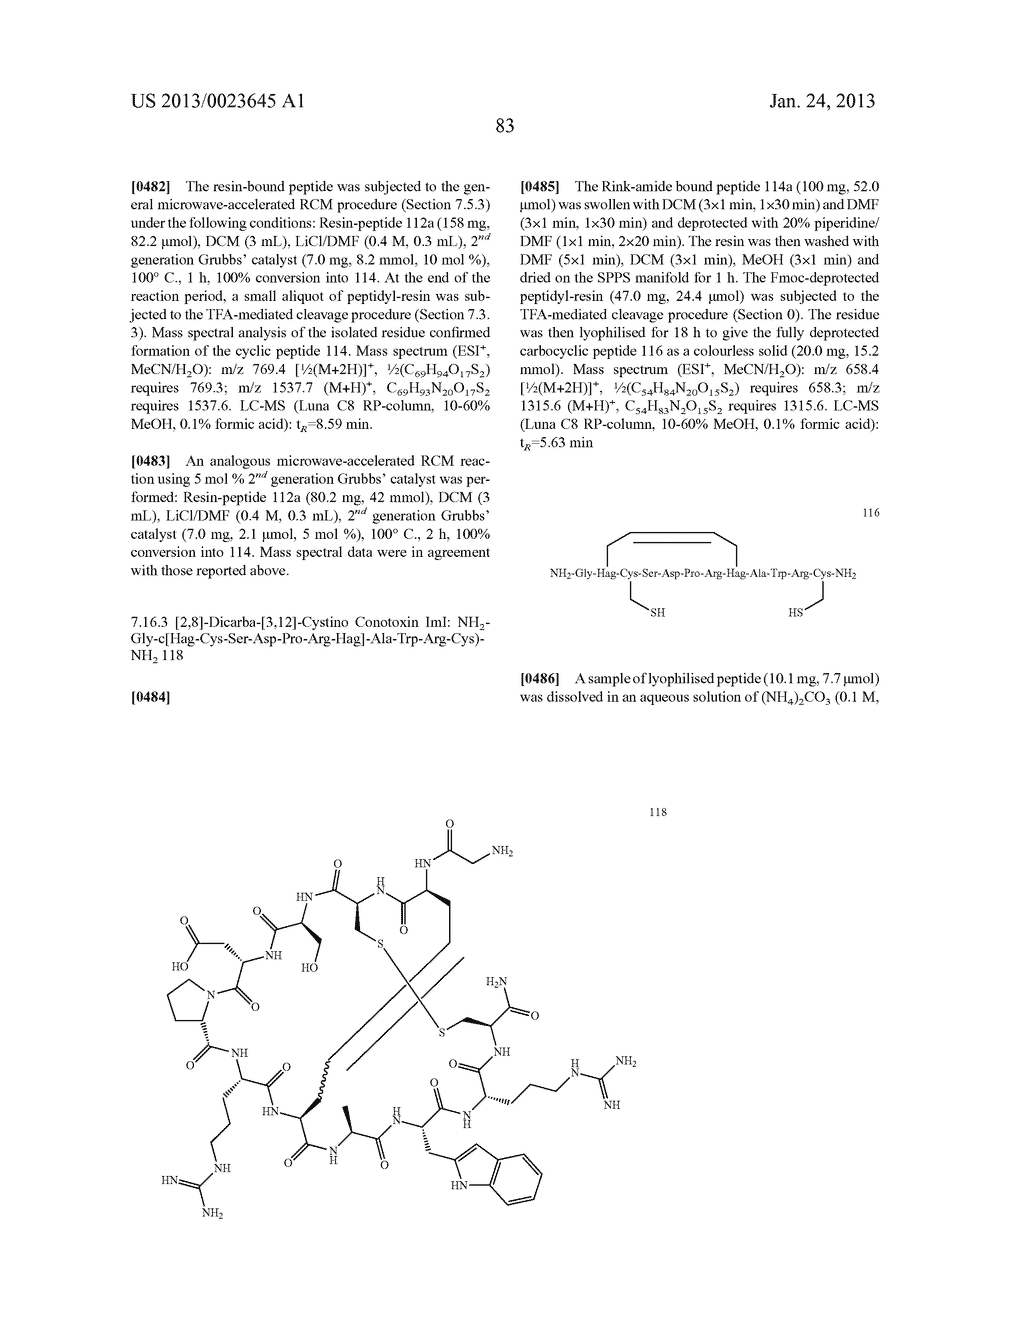 METHODS FOR THE SYNTHESIS OF DICARBA BRIDGES IN ORGANIC COMPOUNDS - diagram, schematic, and image 88